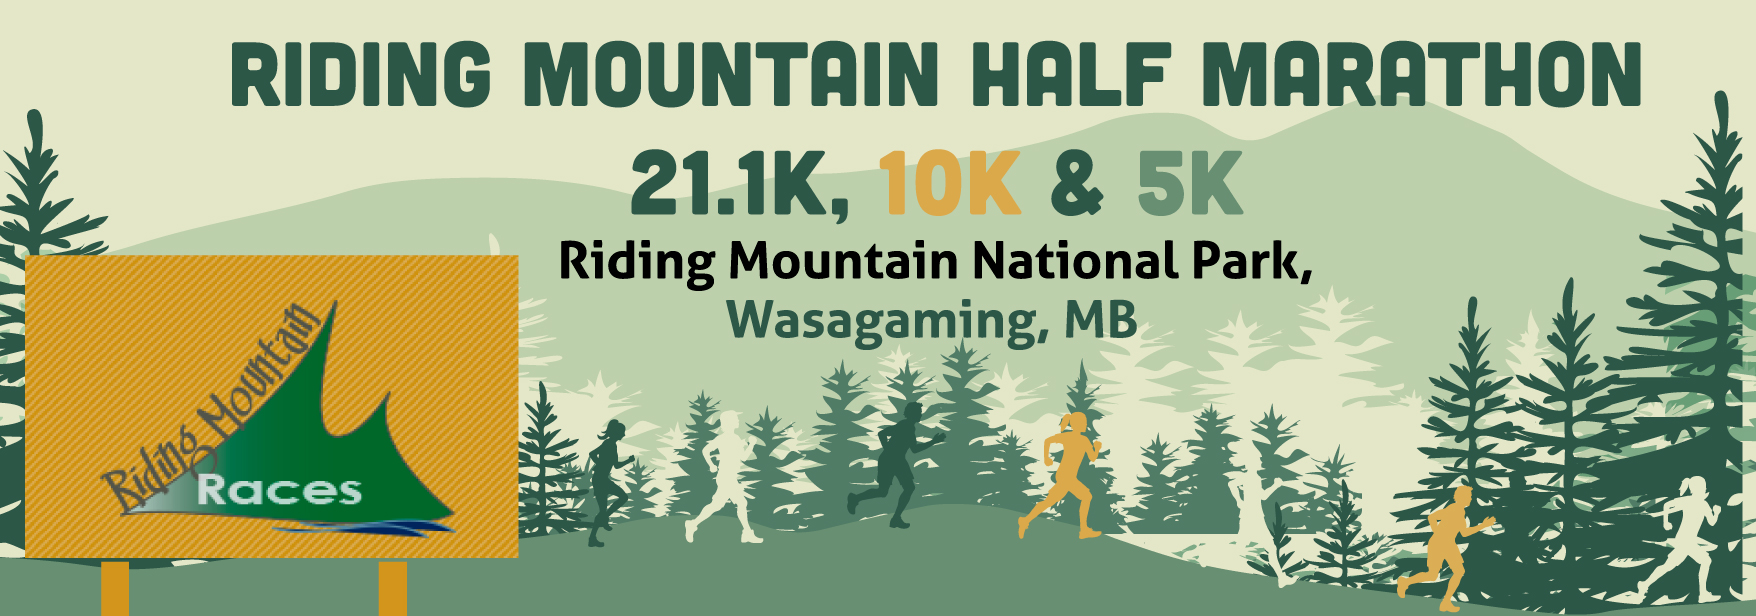 MRAevents2020_ridingmountain